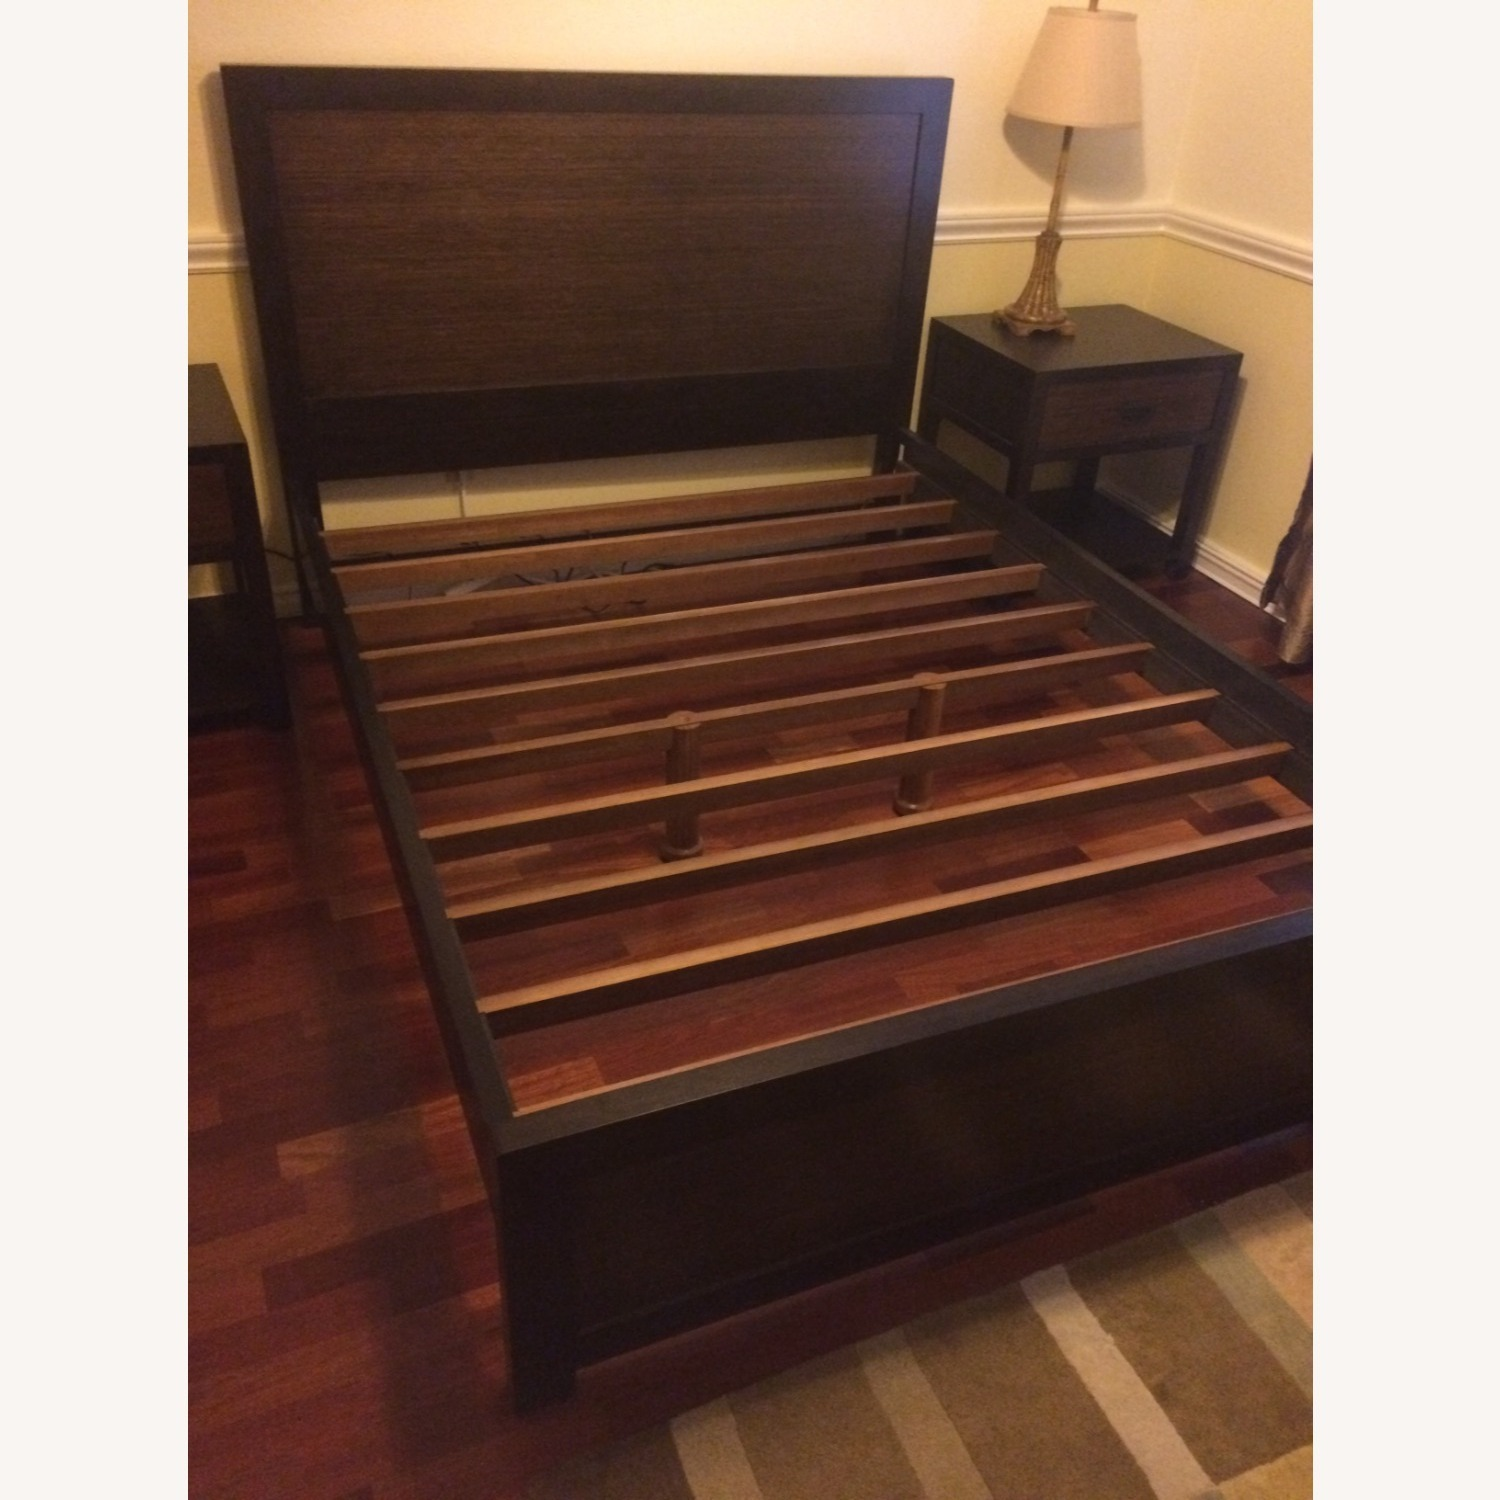 Crate and Barrel Bed Frame - image-7